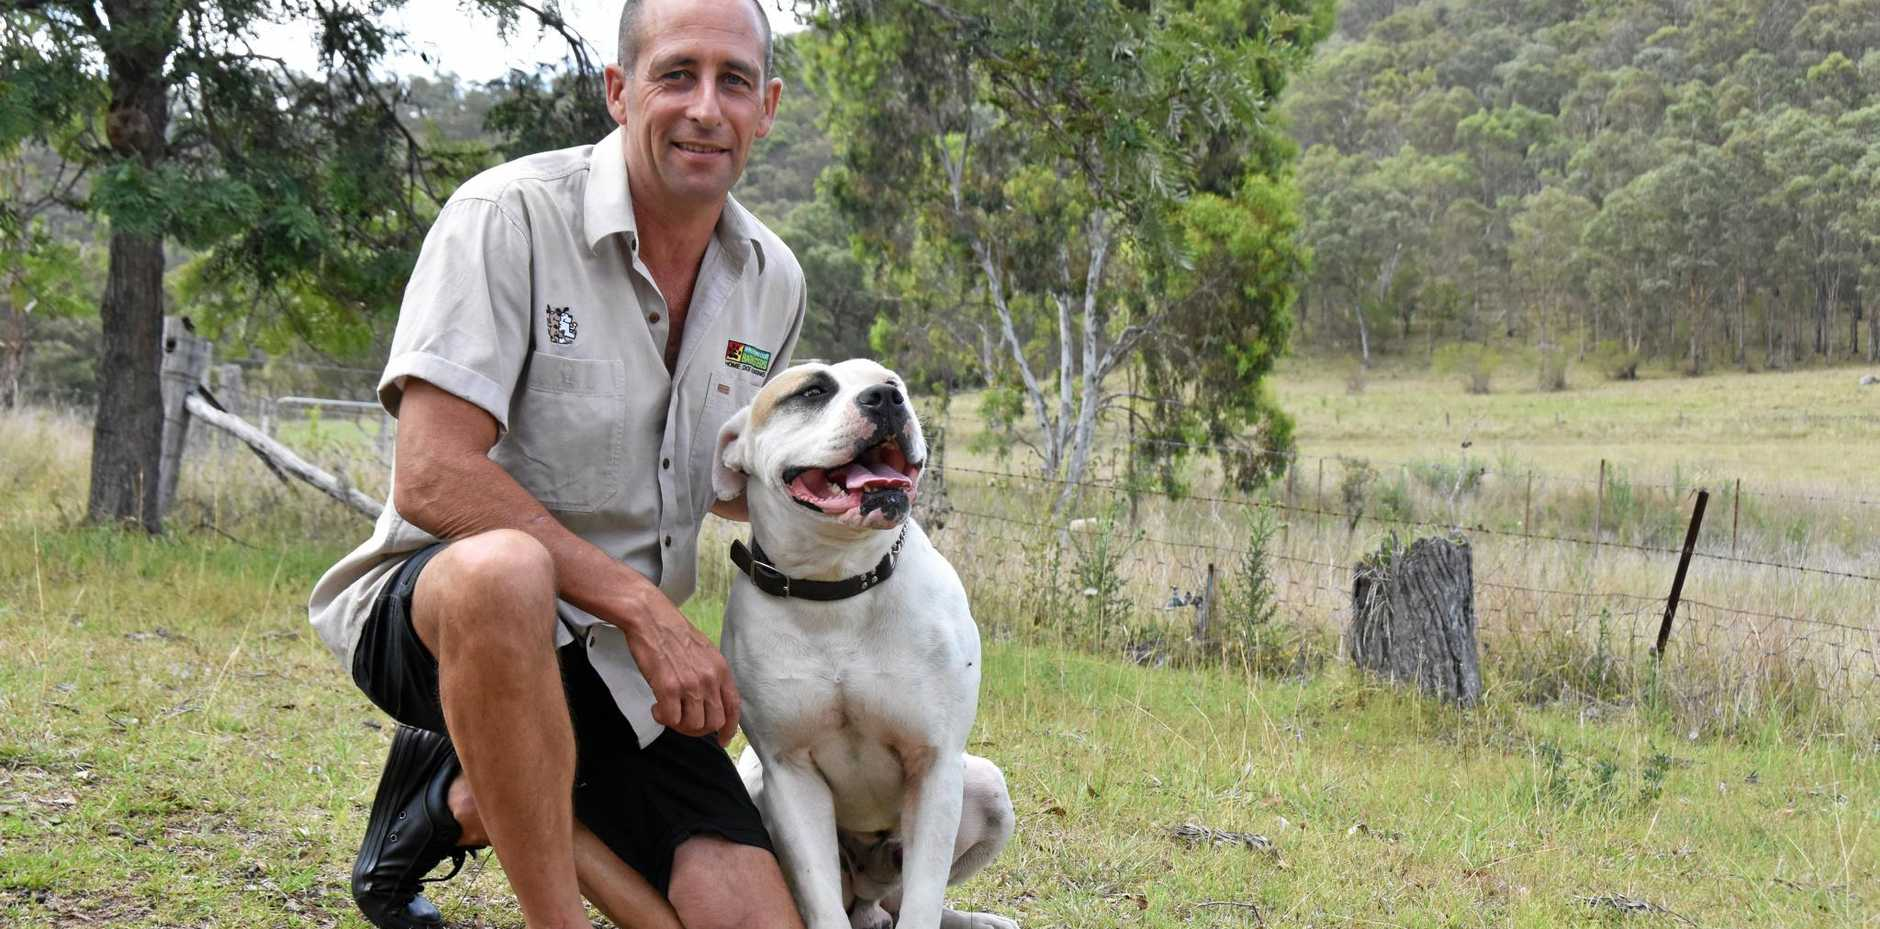 GOOD BOY: Neil Erskine is a dog trainer who talks about the importance of giving your dog an easy to understand name. He's pictured with Bullseye.